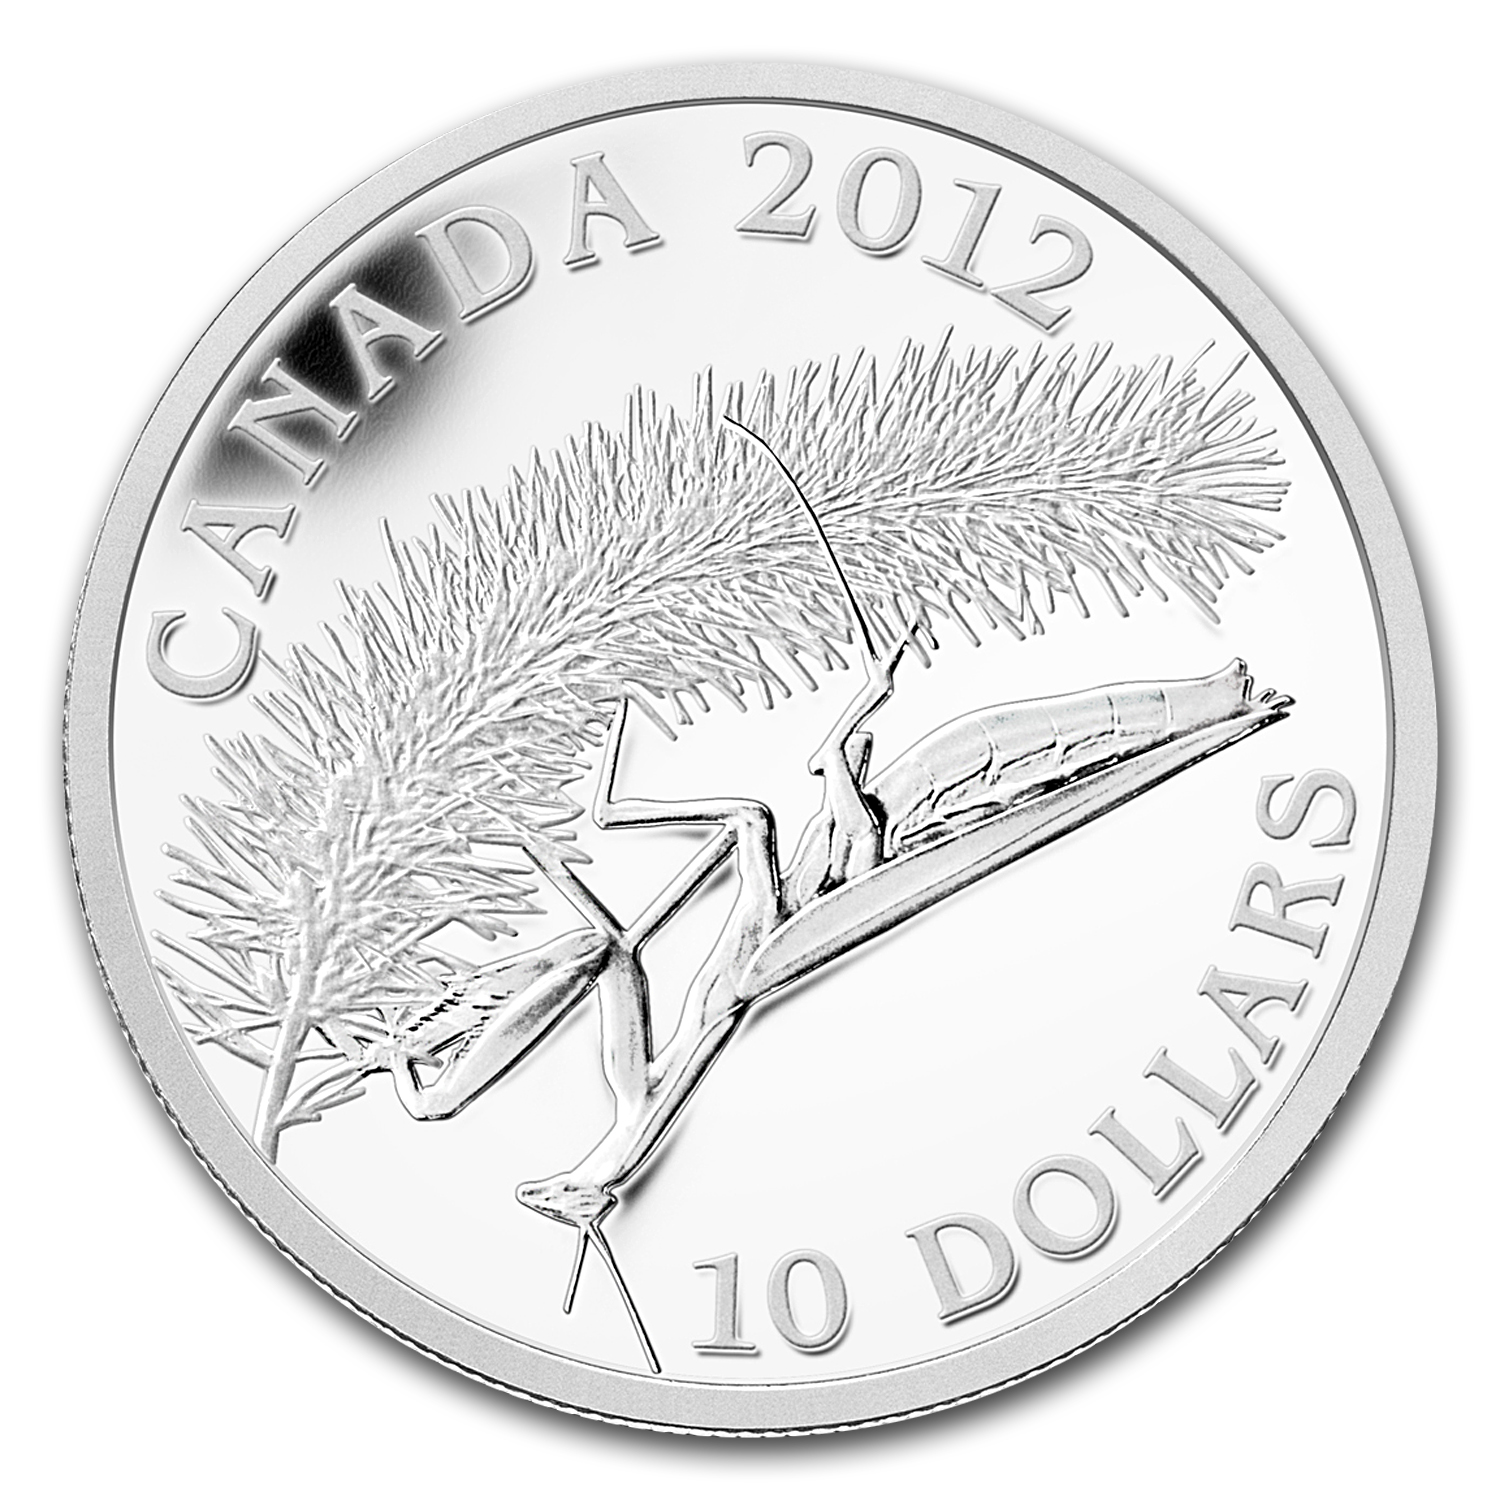 2012 Canada 1/2 oz Silver $10 Geographic Photo Praying Mantis